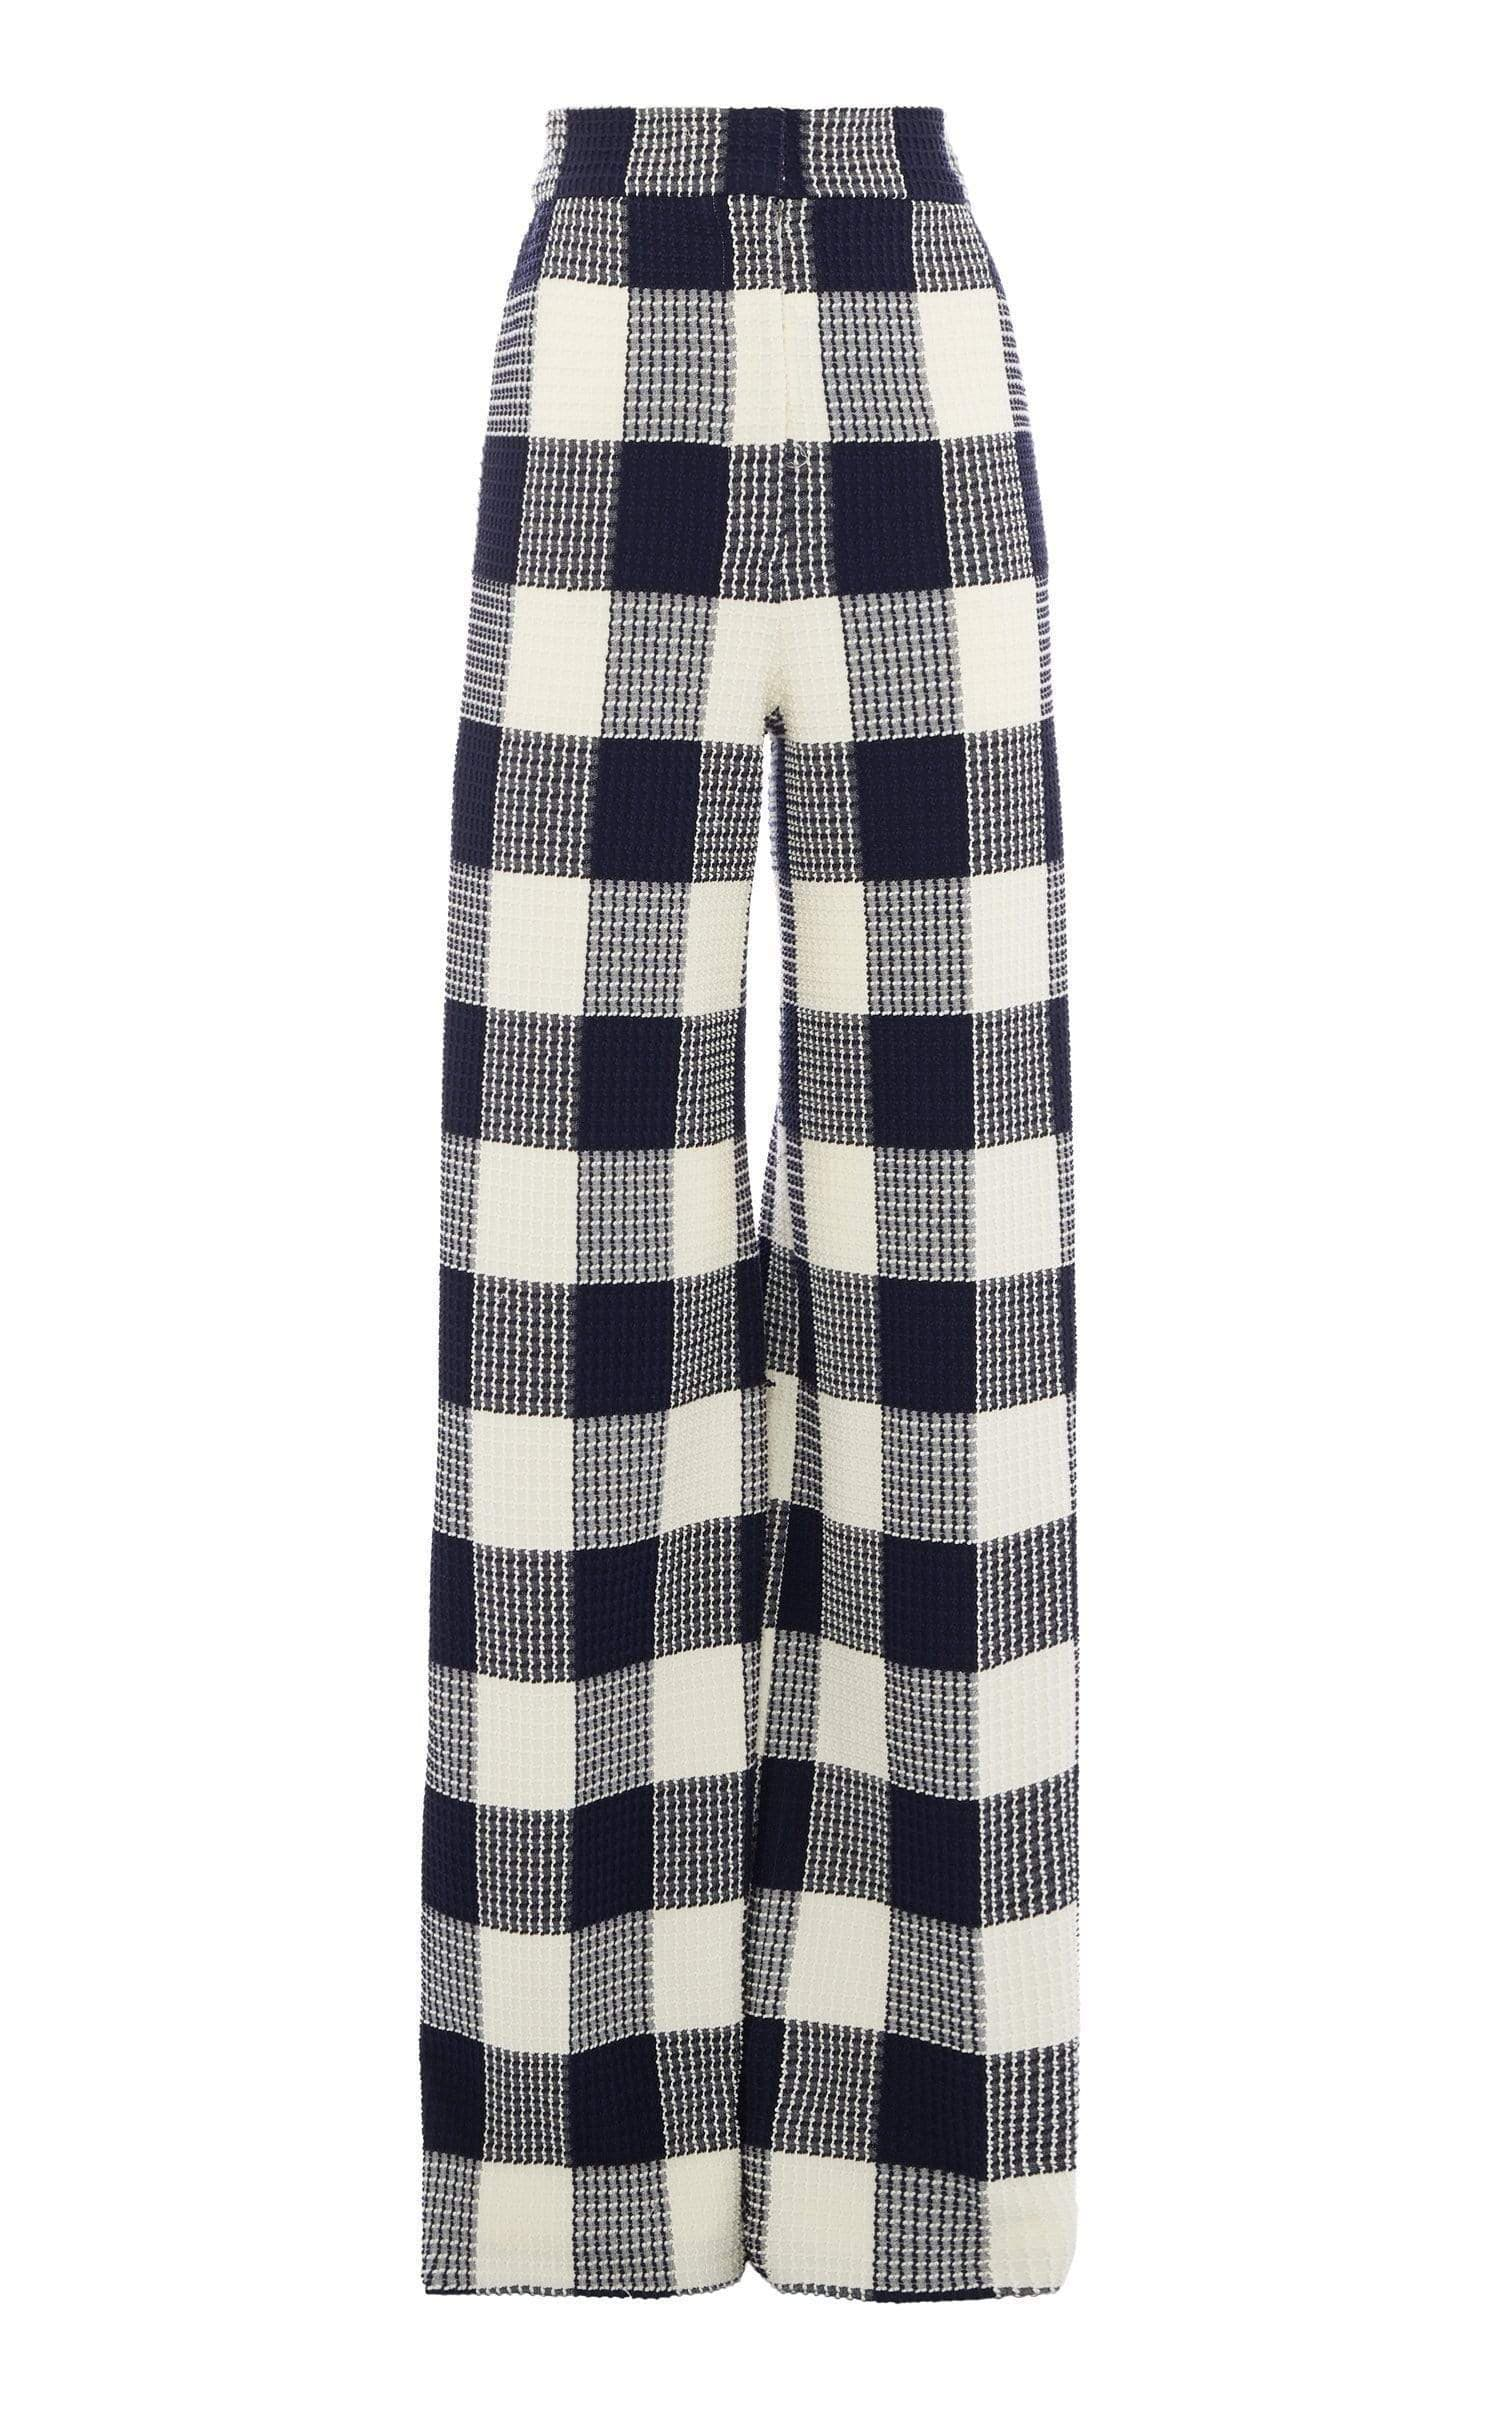 Delano Trouser In Navy/White from Roland Mouret